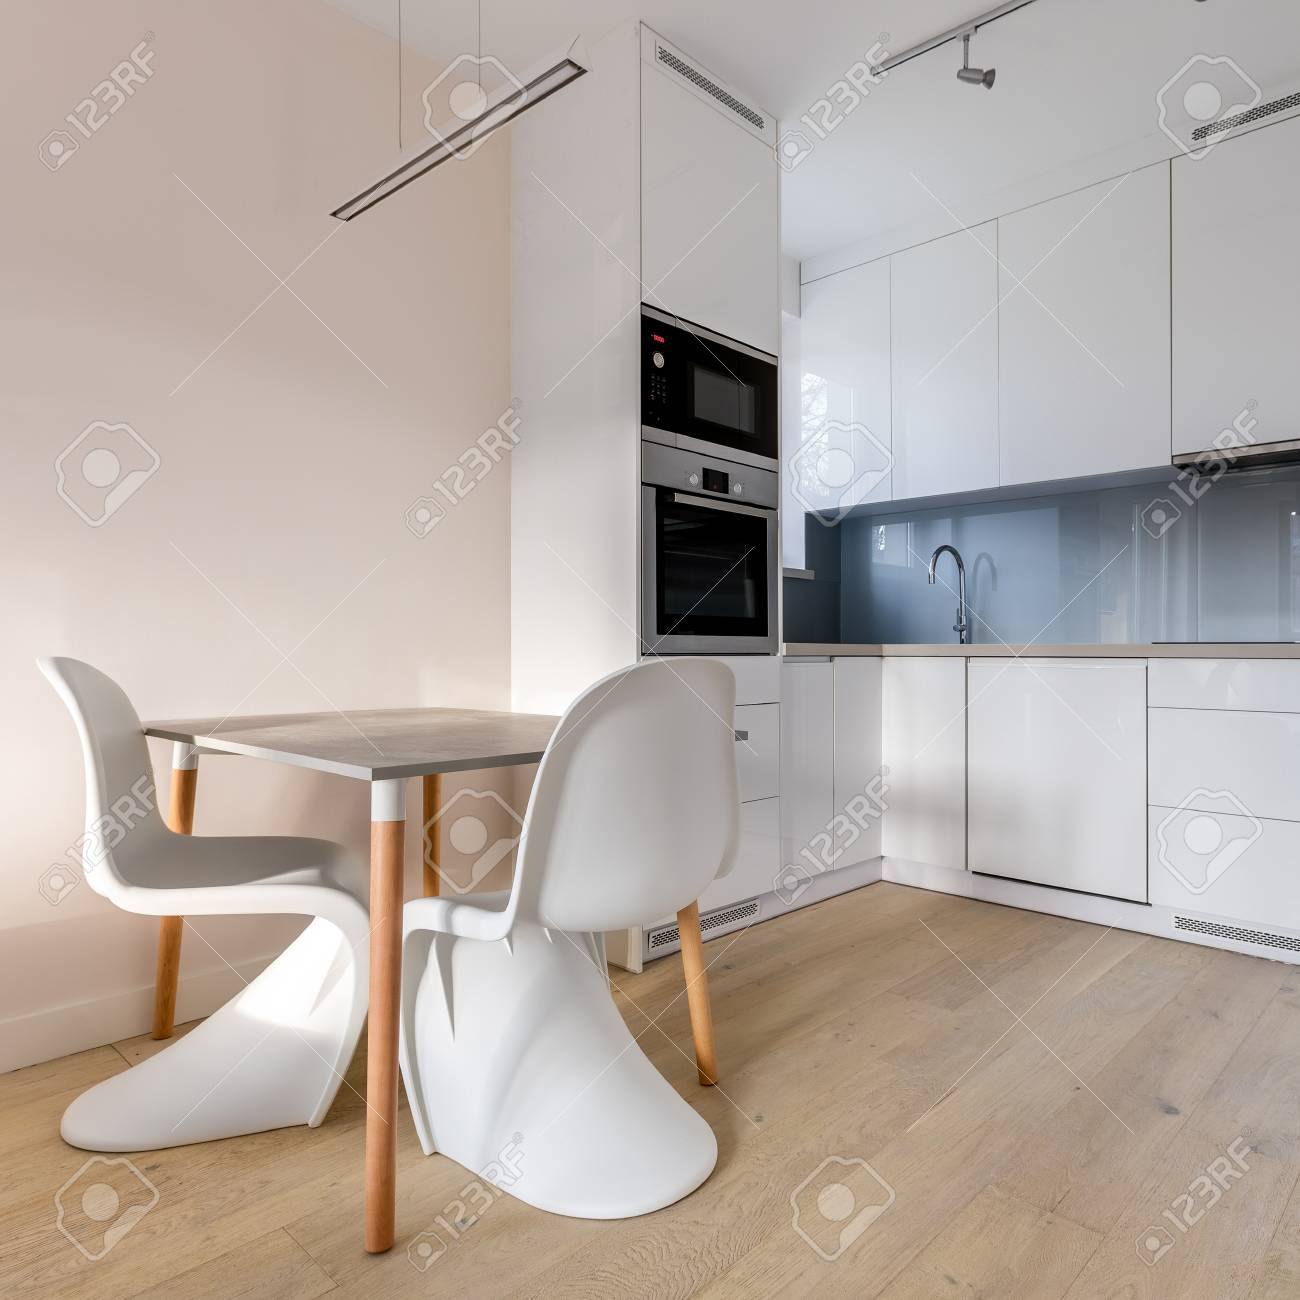 Admirable Simple Kitchen With Two White Chairs And Small Dining Table Forskolin Free Trial Chair Design Images Forskolin Free Trialorg